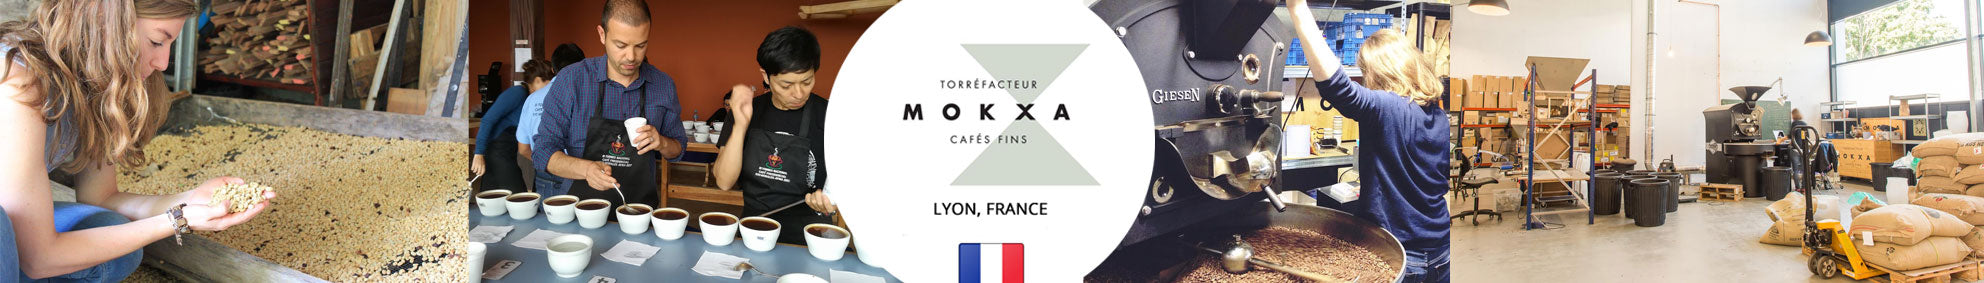 Cafe Mokxa Coffee Roasters France